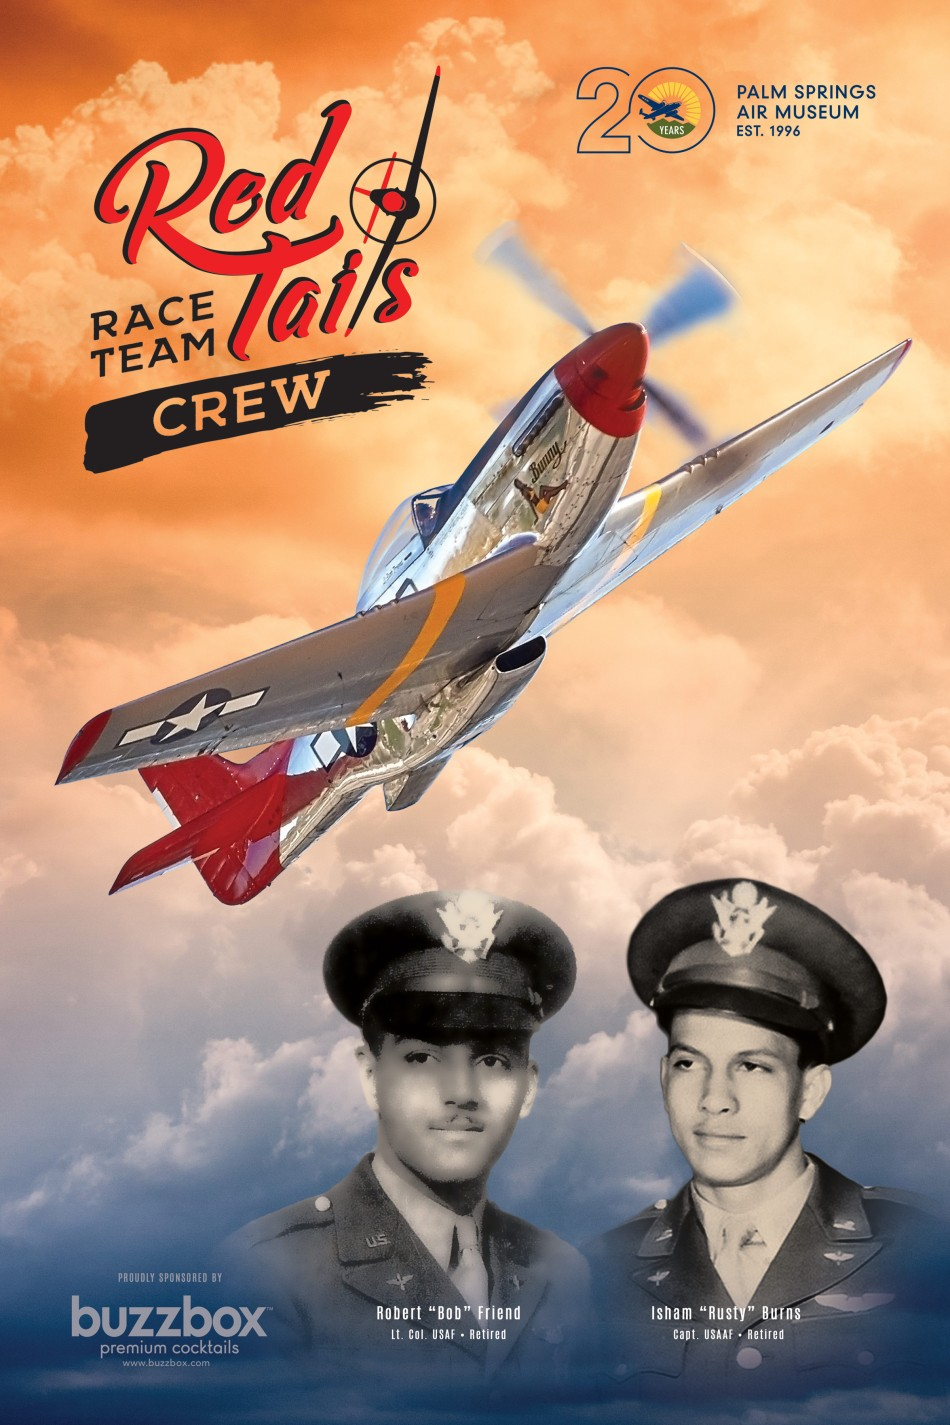 17-1756-PSAM-reno-red-tails-poster-v3